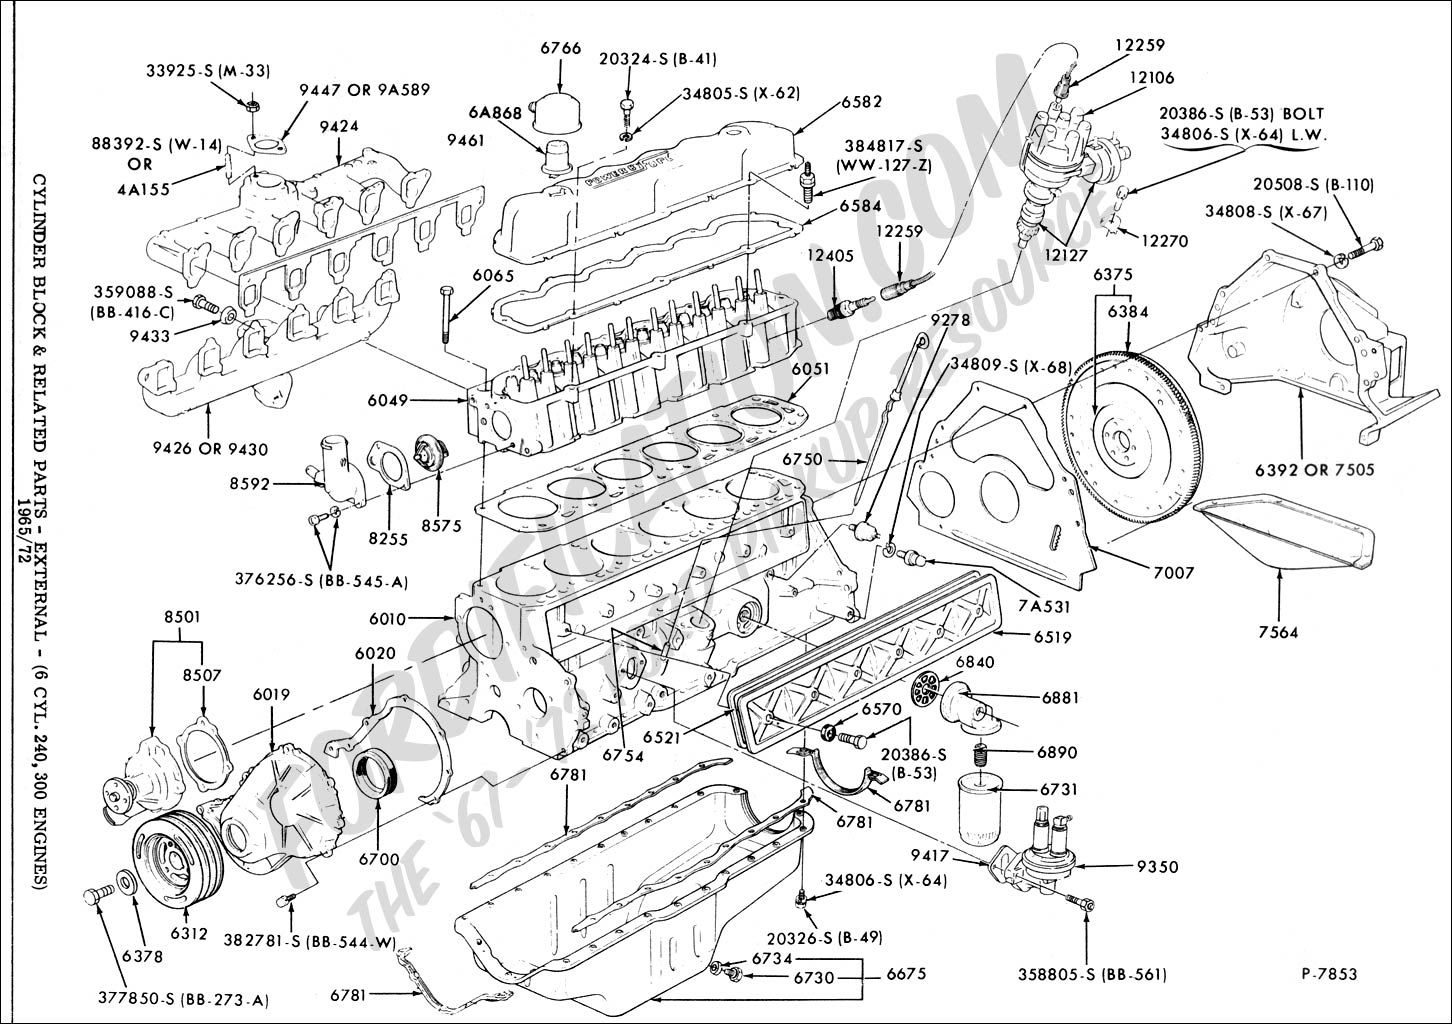 ford straight 6 engine diagram bb ford, ford trucks, technical 1965 ford f100 engine diagram f100 engine diagram #1